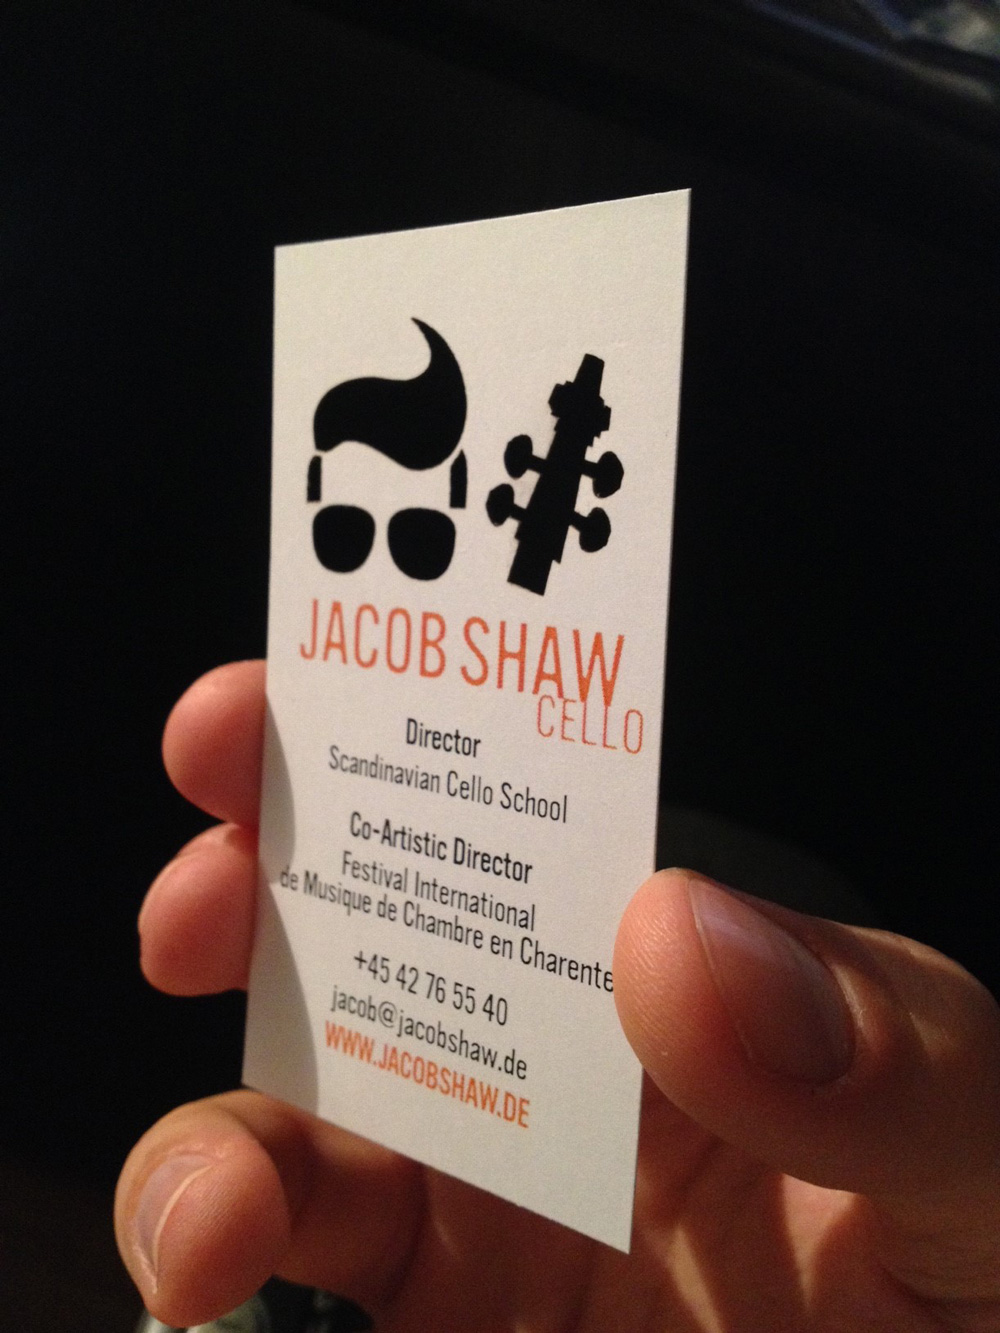 Kilmulis design - Jacob Shaw - logo 04